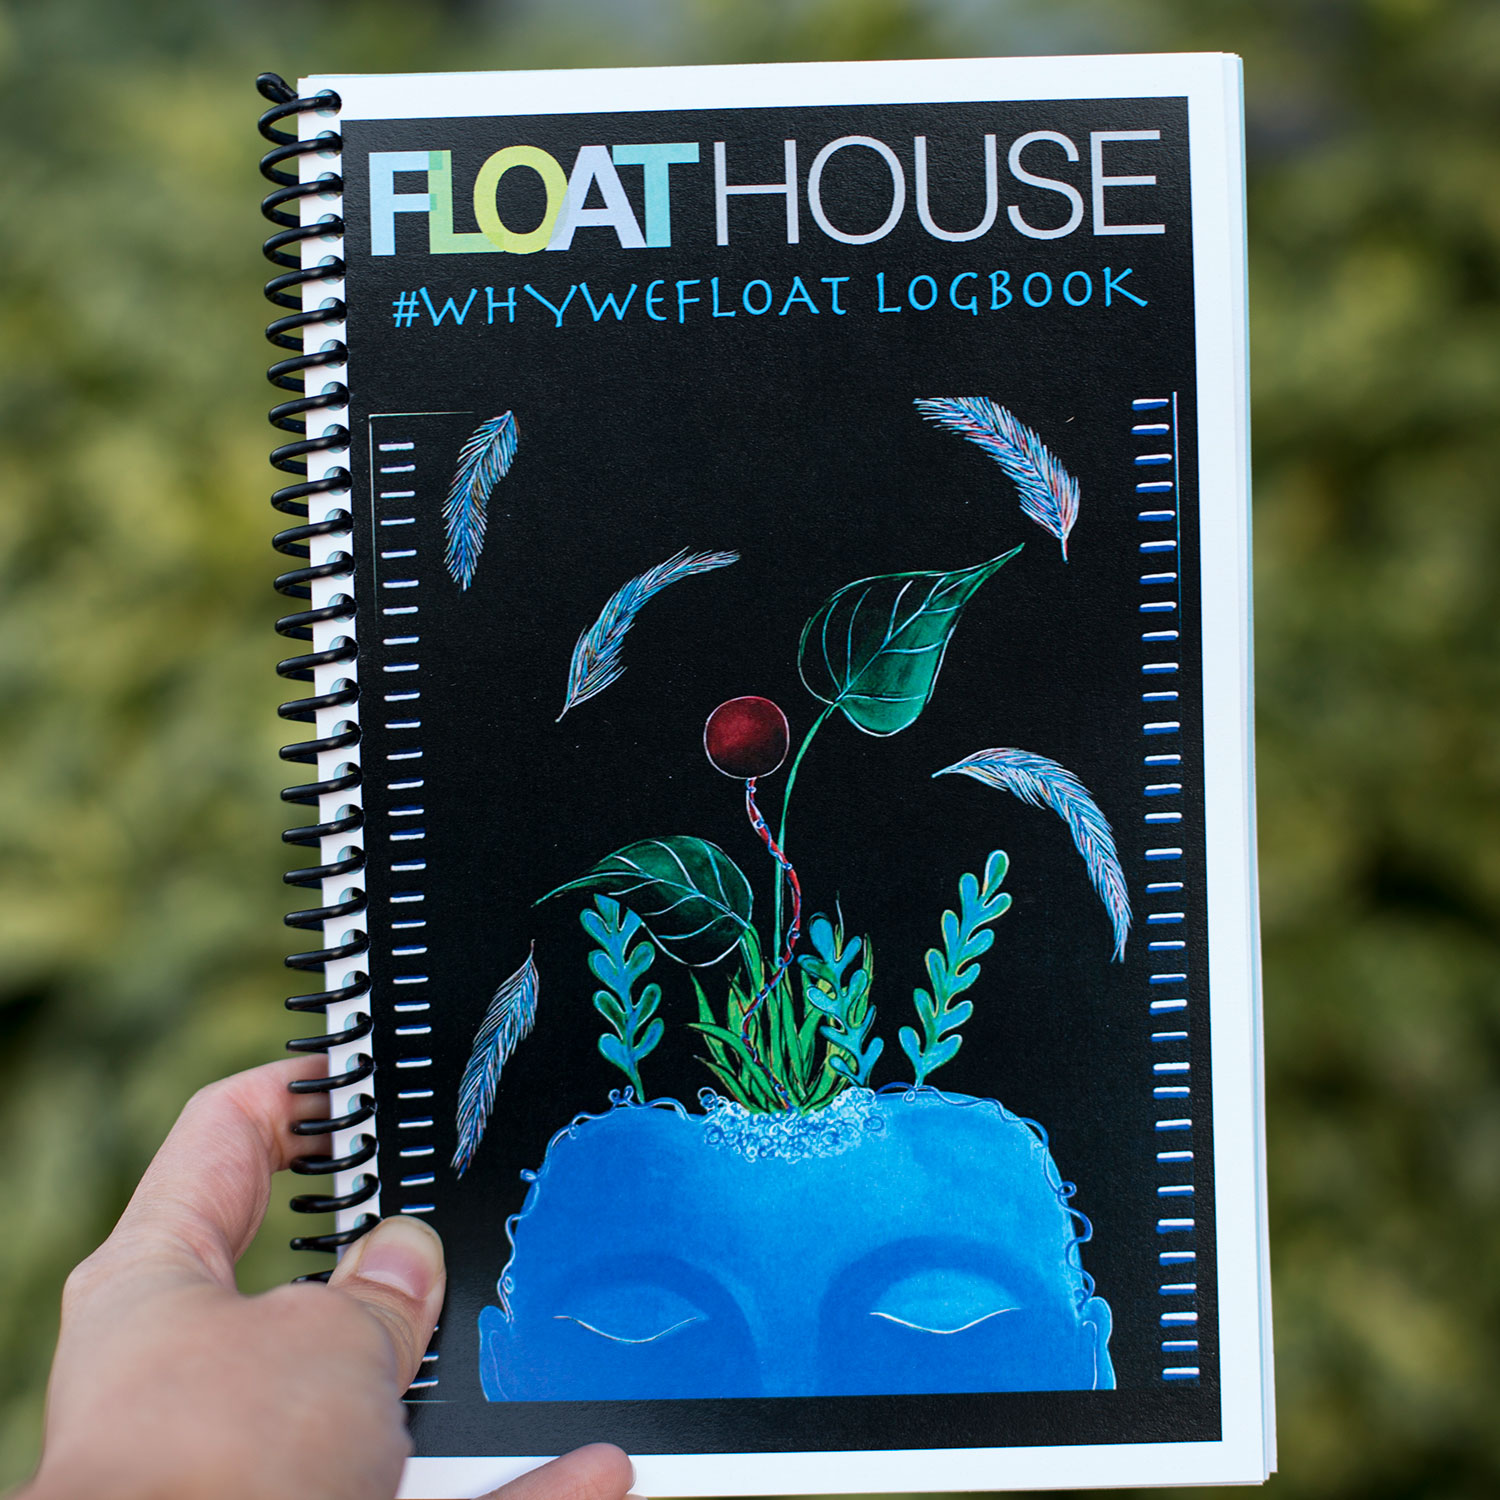 float-house-log-book-member-appreciation-night